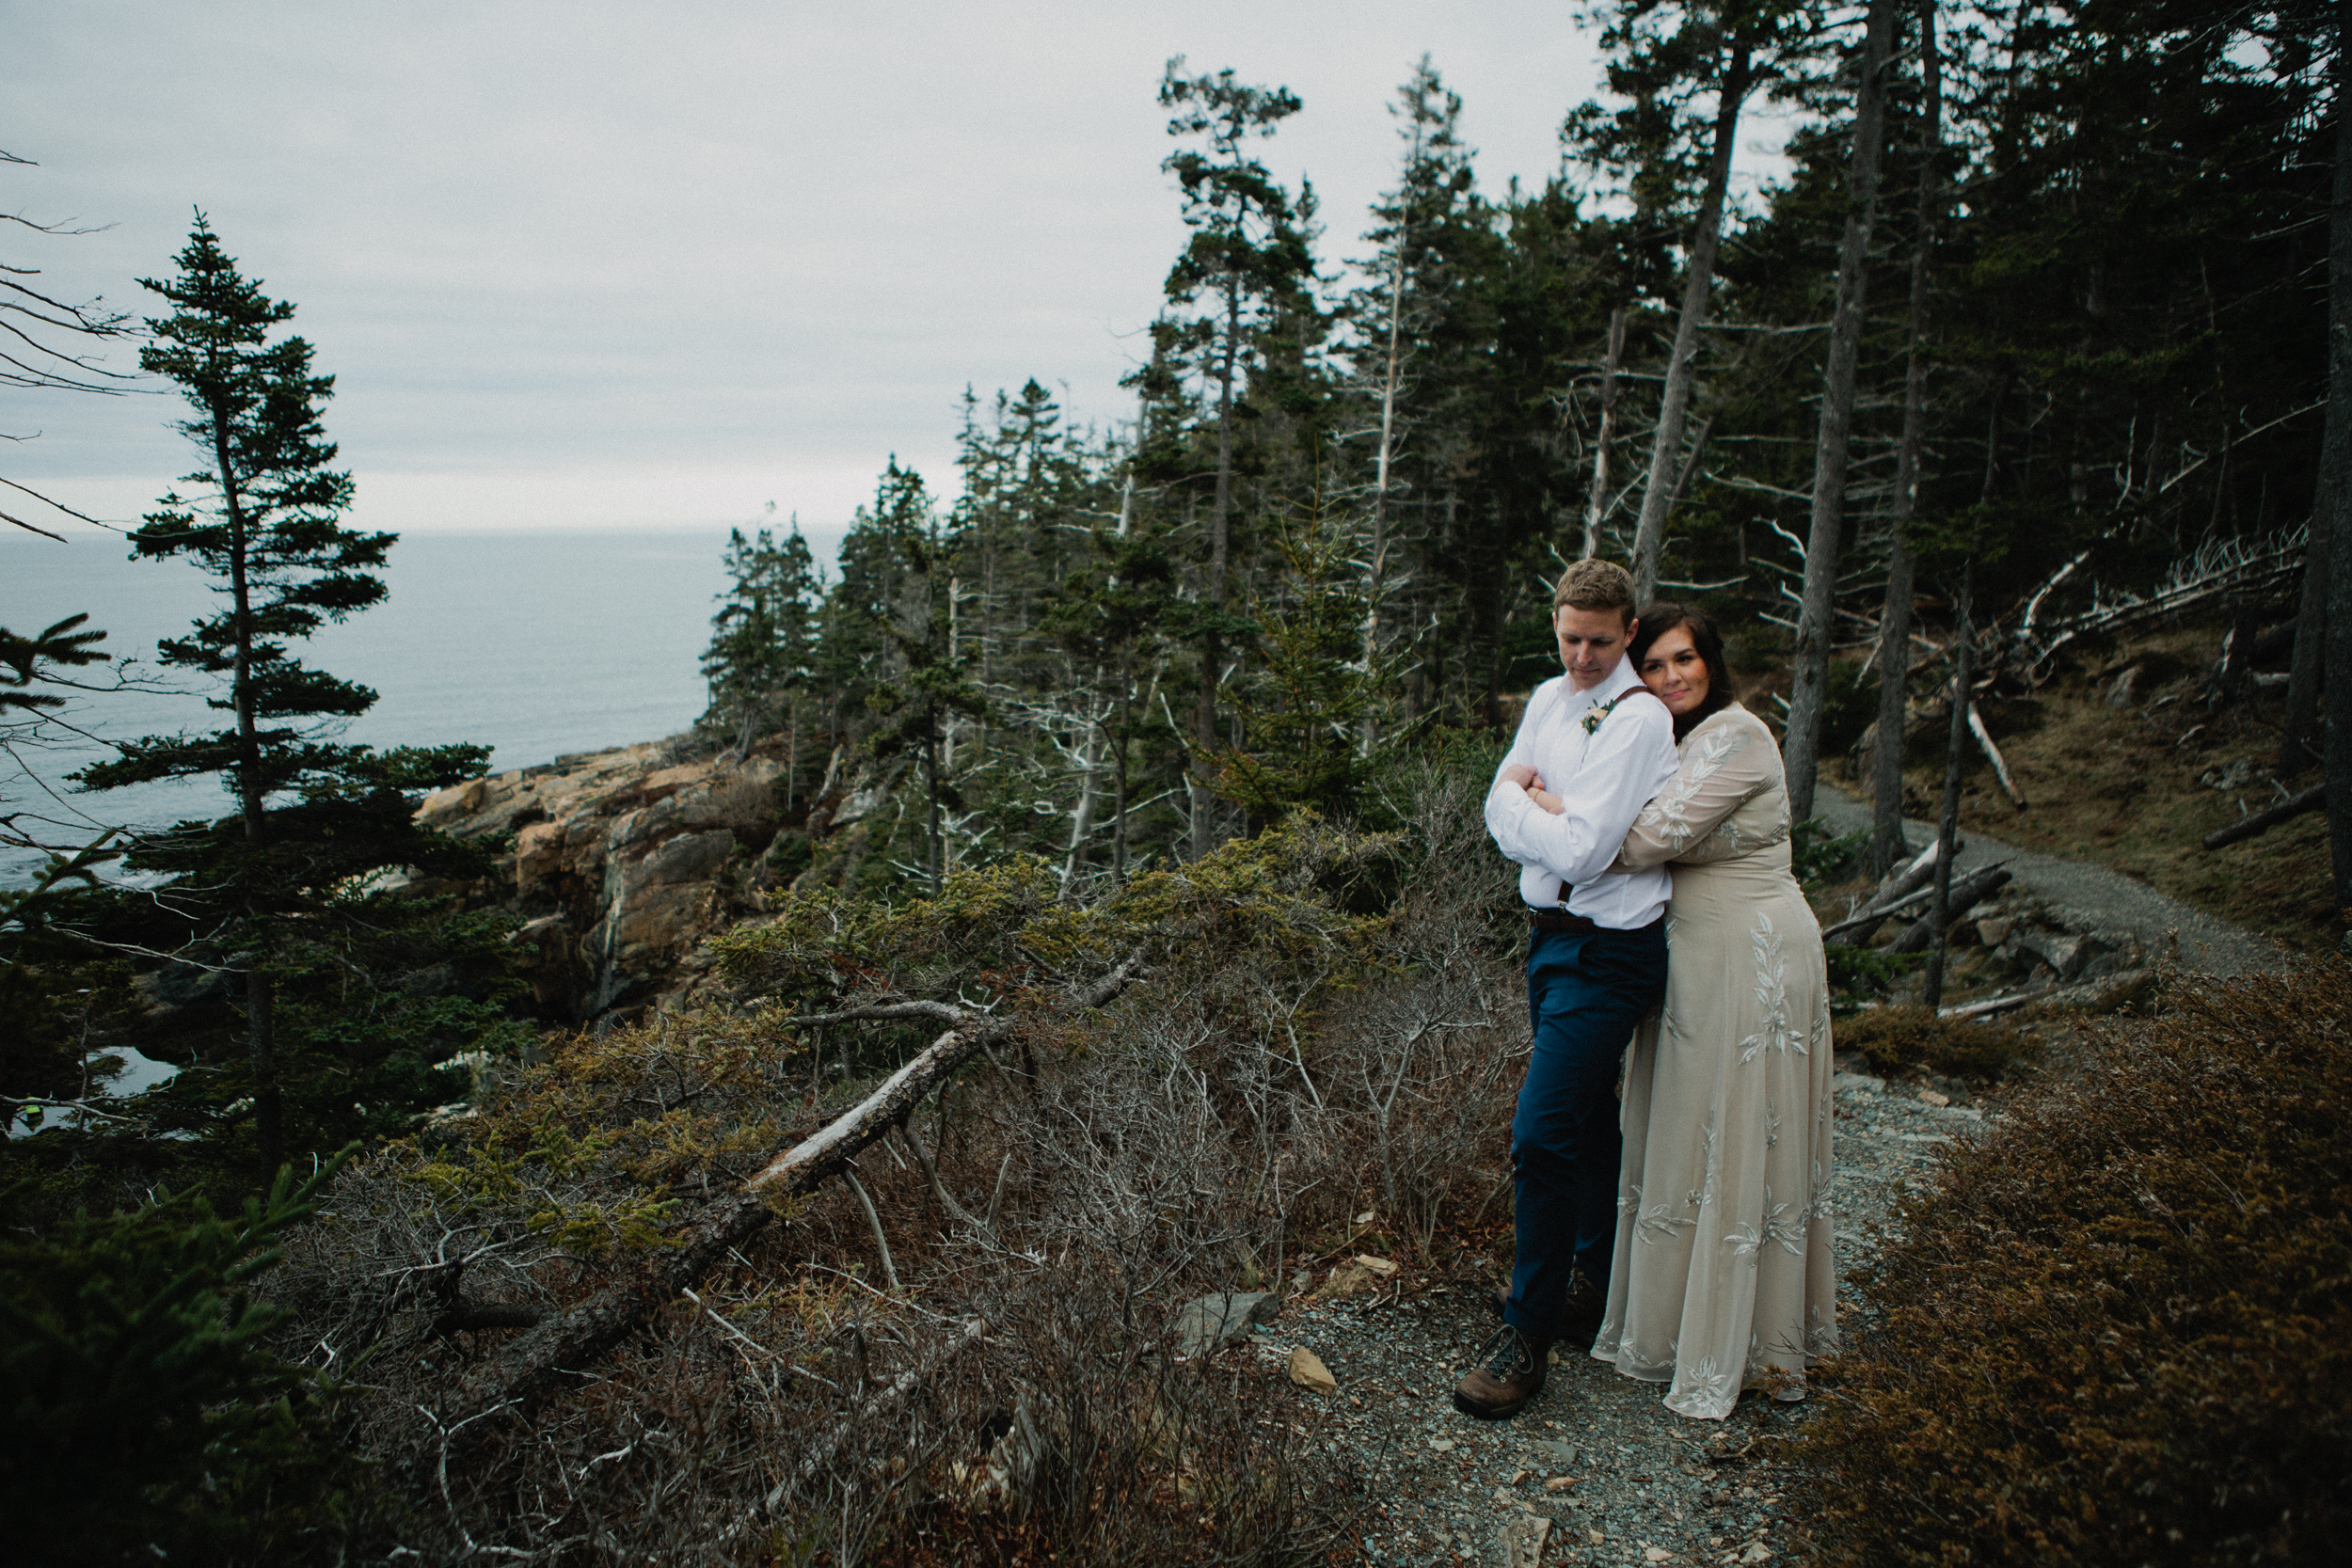 Acadia-Elopement-Photos-411.jpg